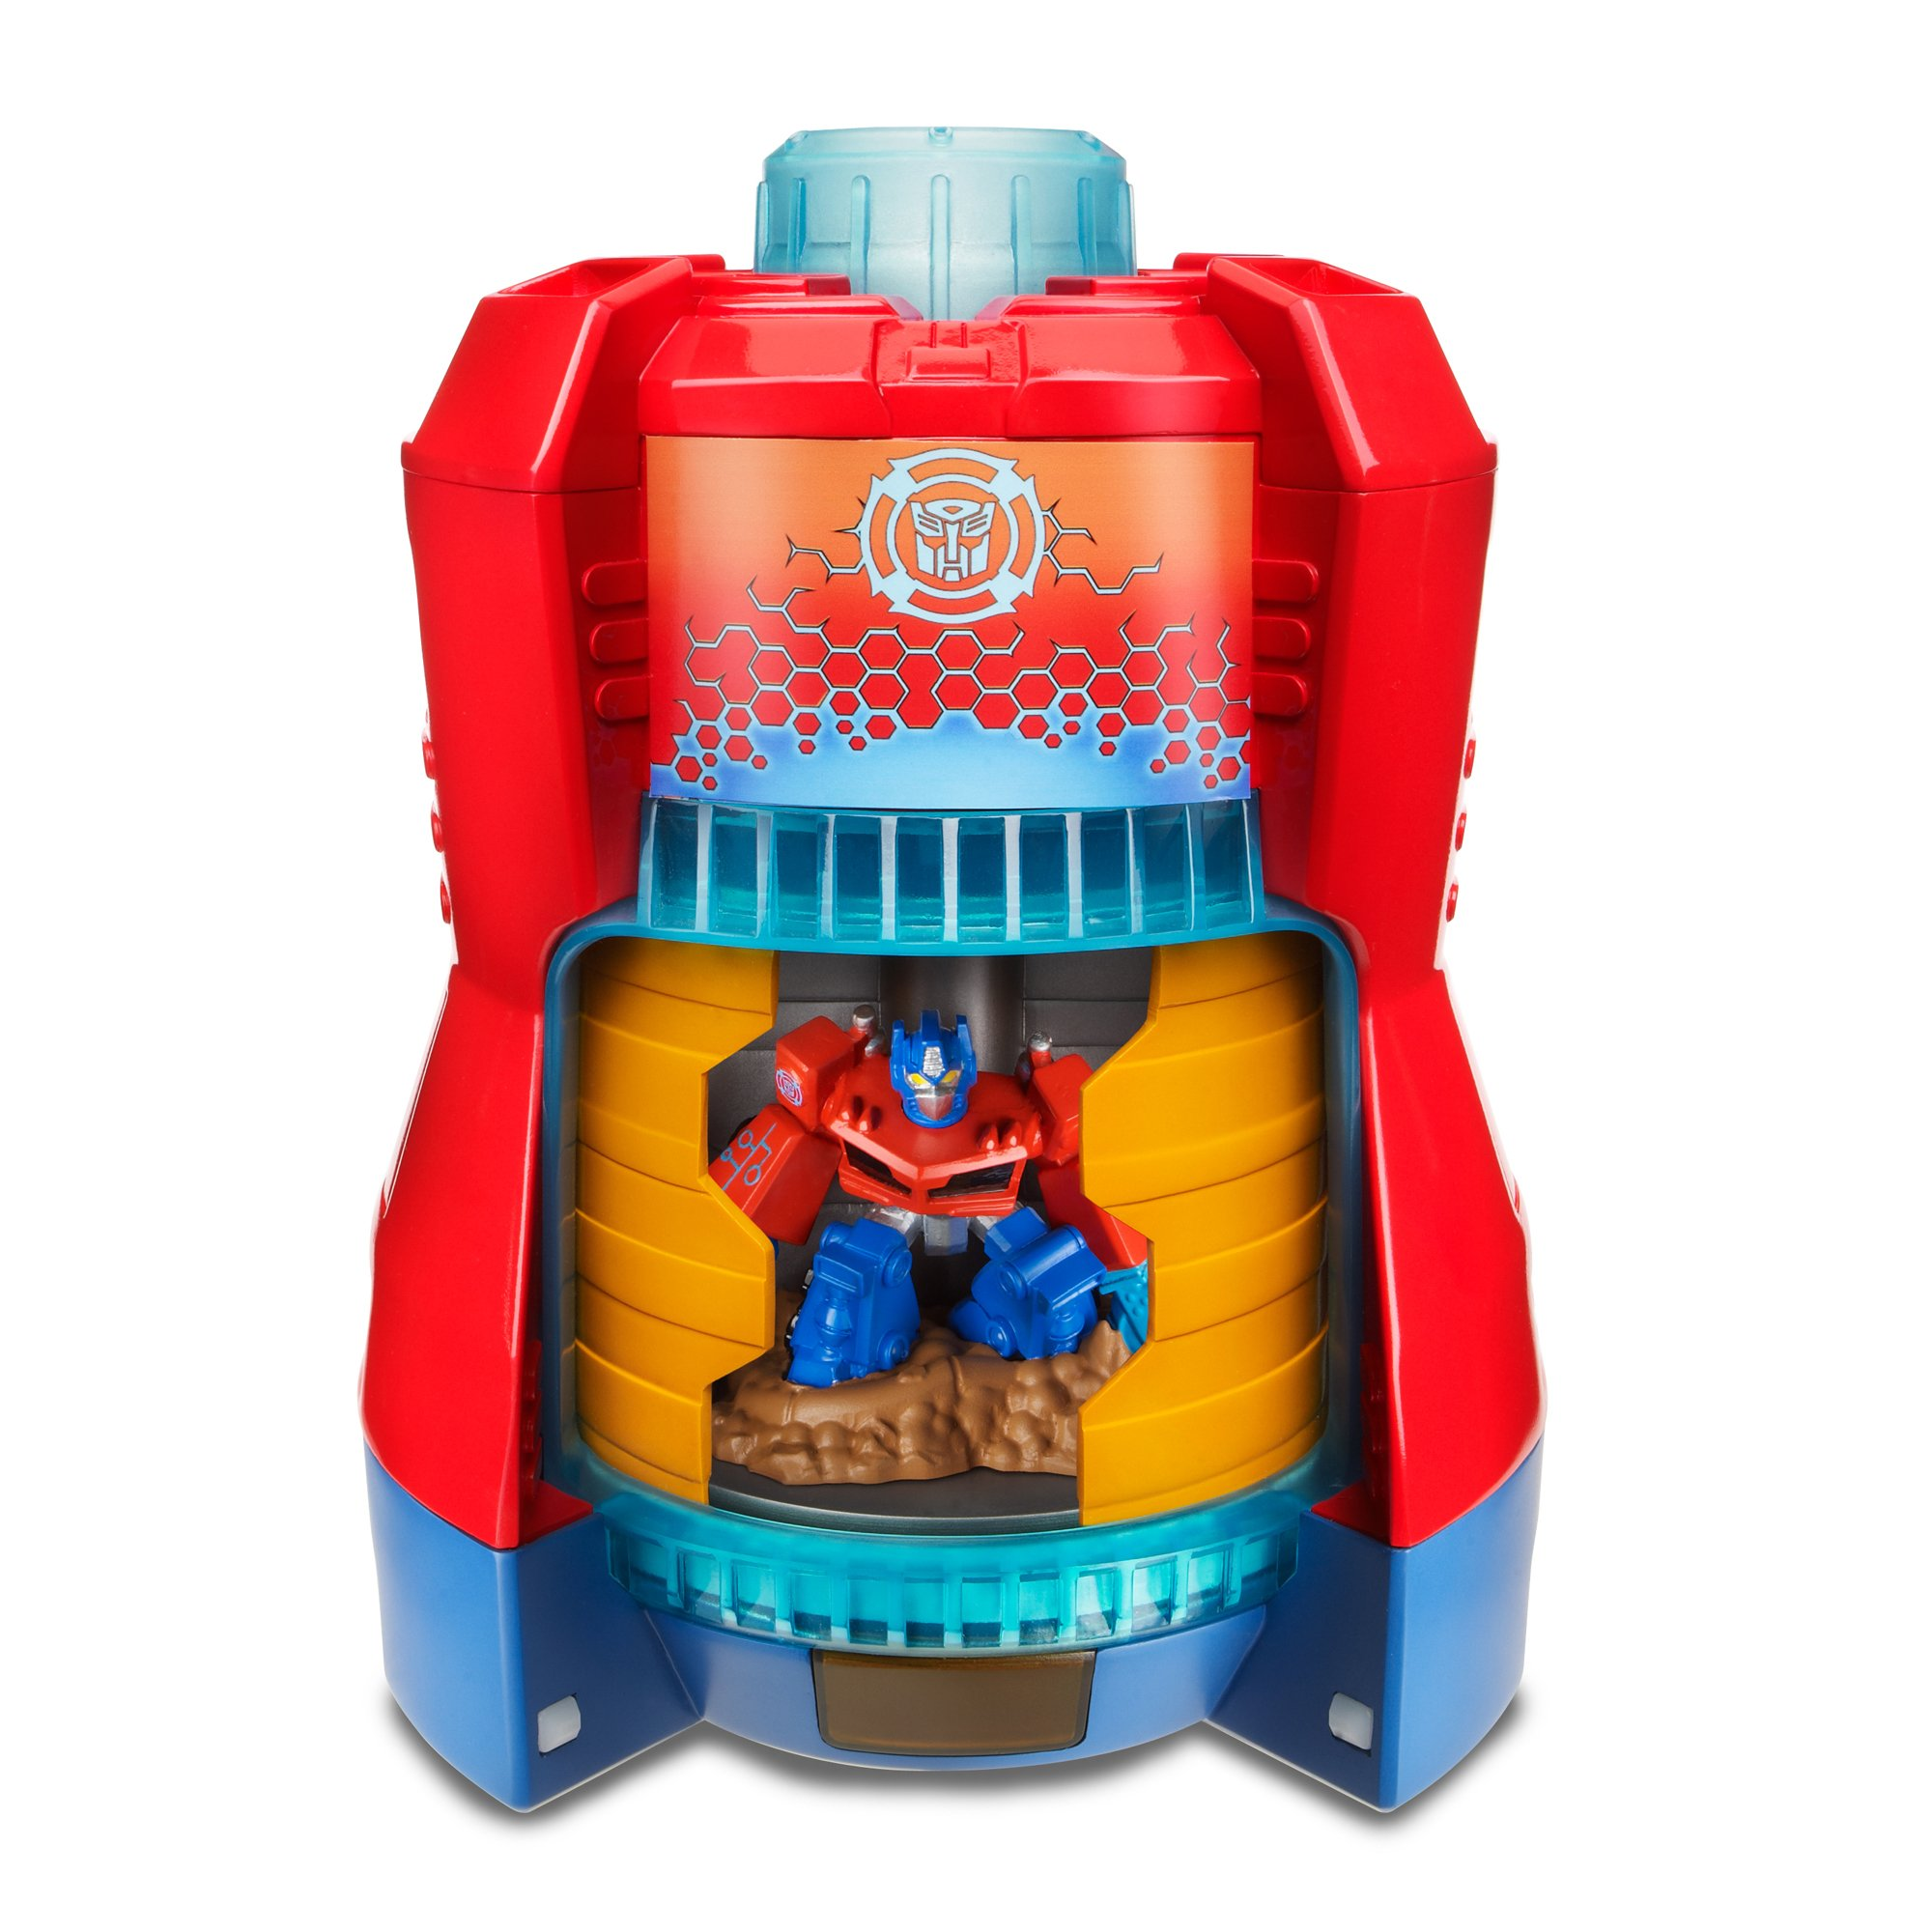 Playskool Heroes Transformers Rescue Bots Beam Box Game System by Transformers (Image #3)